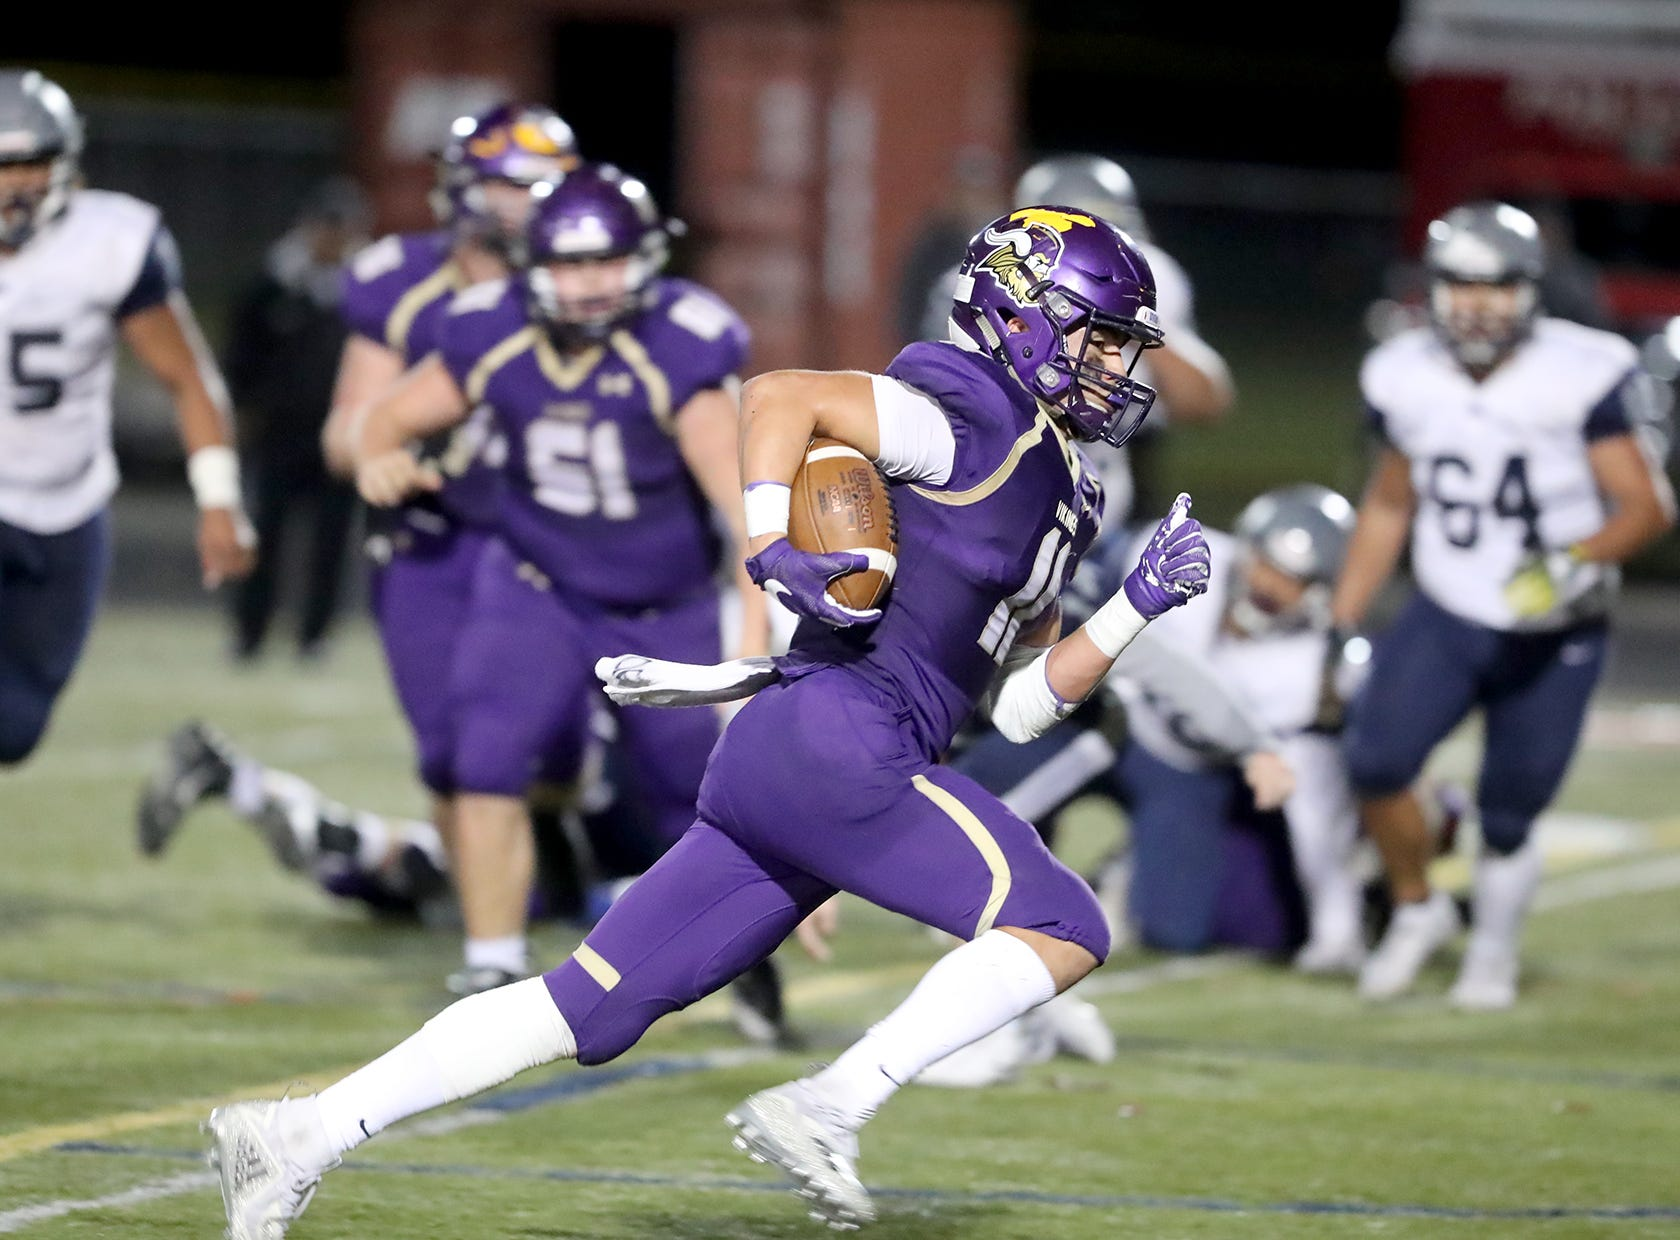 The North Kitsap Vikings defeated River Ridge in a West Central District playoff game at North Kitsap on Friday, November 2, 2018.